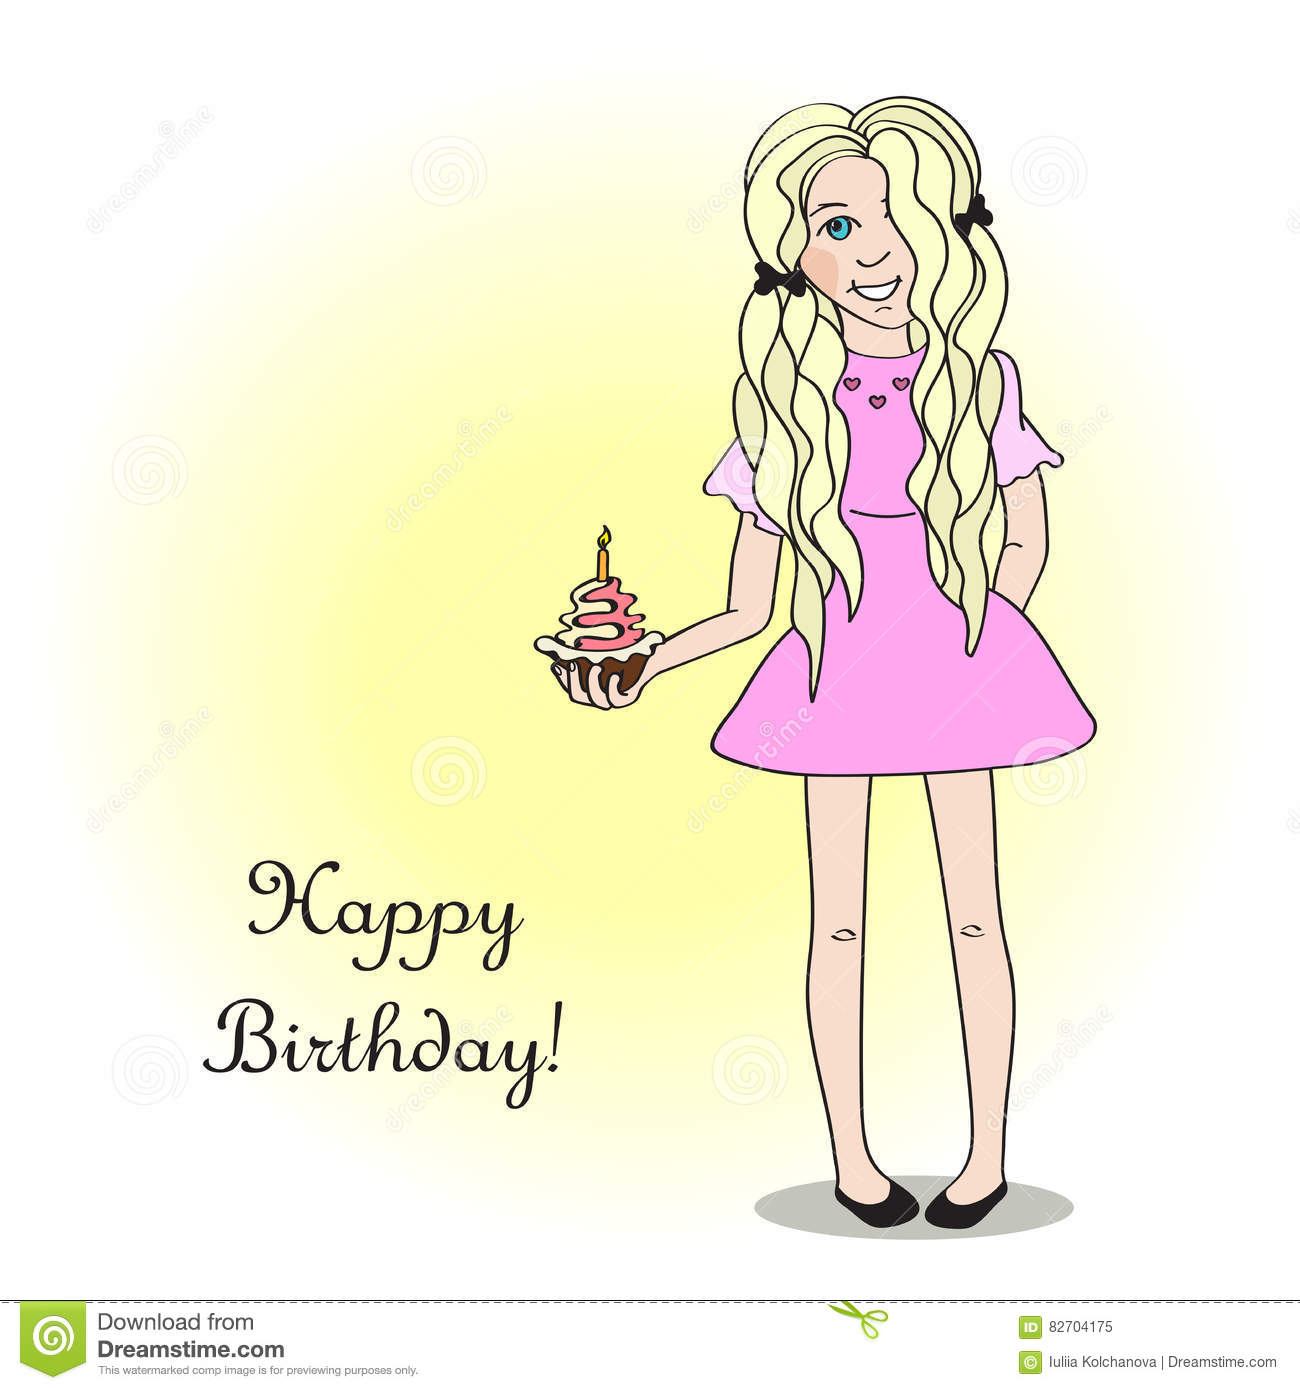 Urime ditëlindja Majlinda Nikçi! Happy-birthday-card-cute-girl-blonde-which-holding-festive-cupcake-82704175